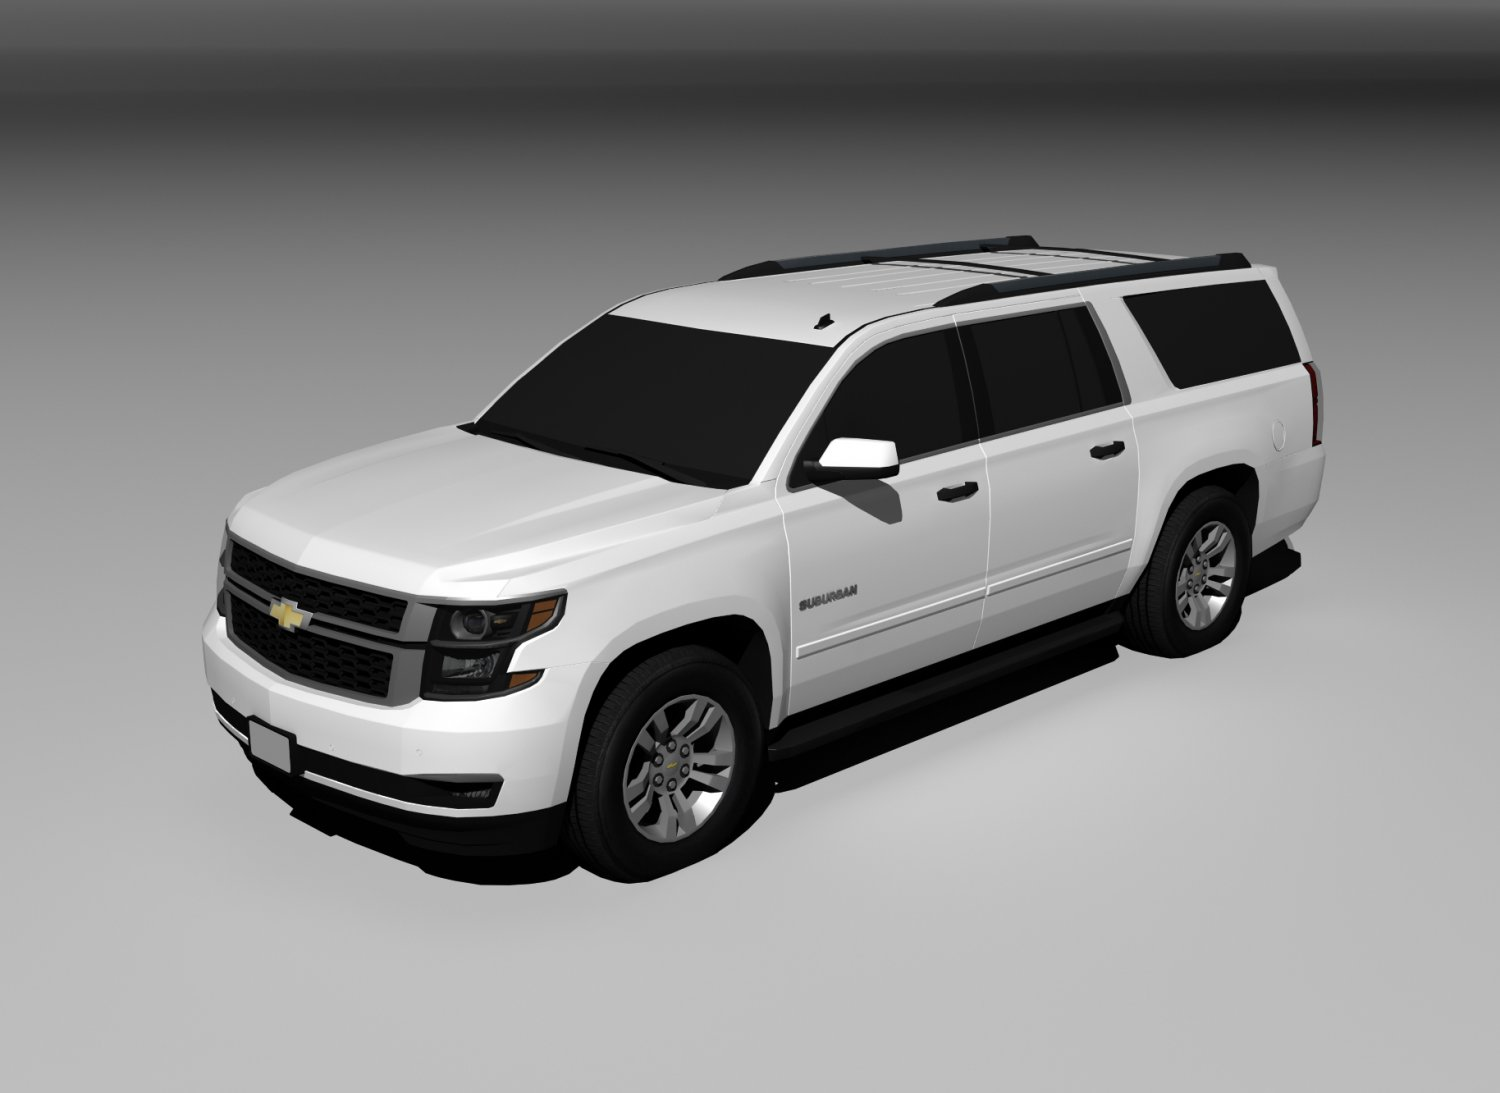 Chevrolet Suburban 2015 Free 3d Model In Suv 3dexport